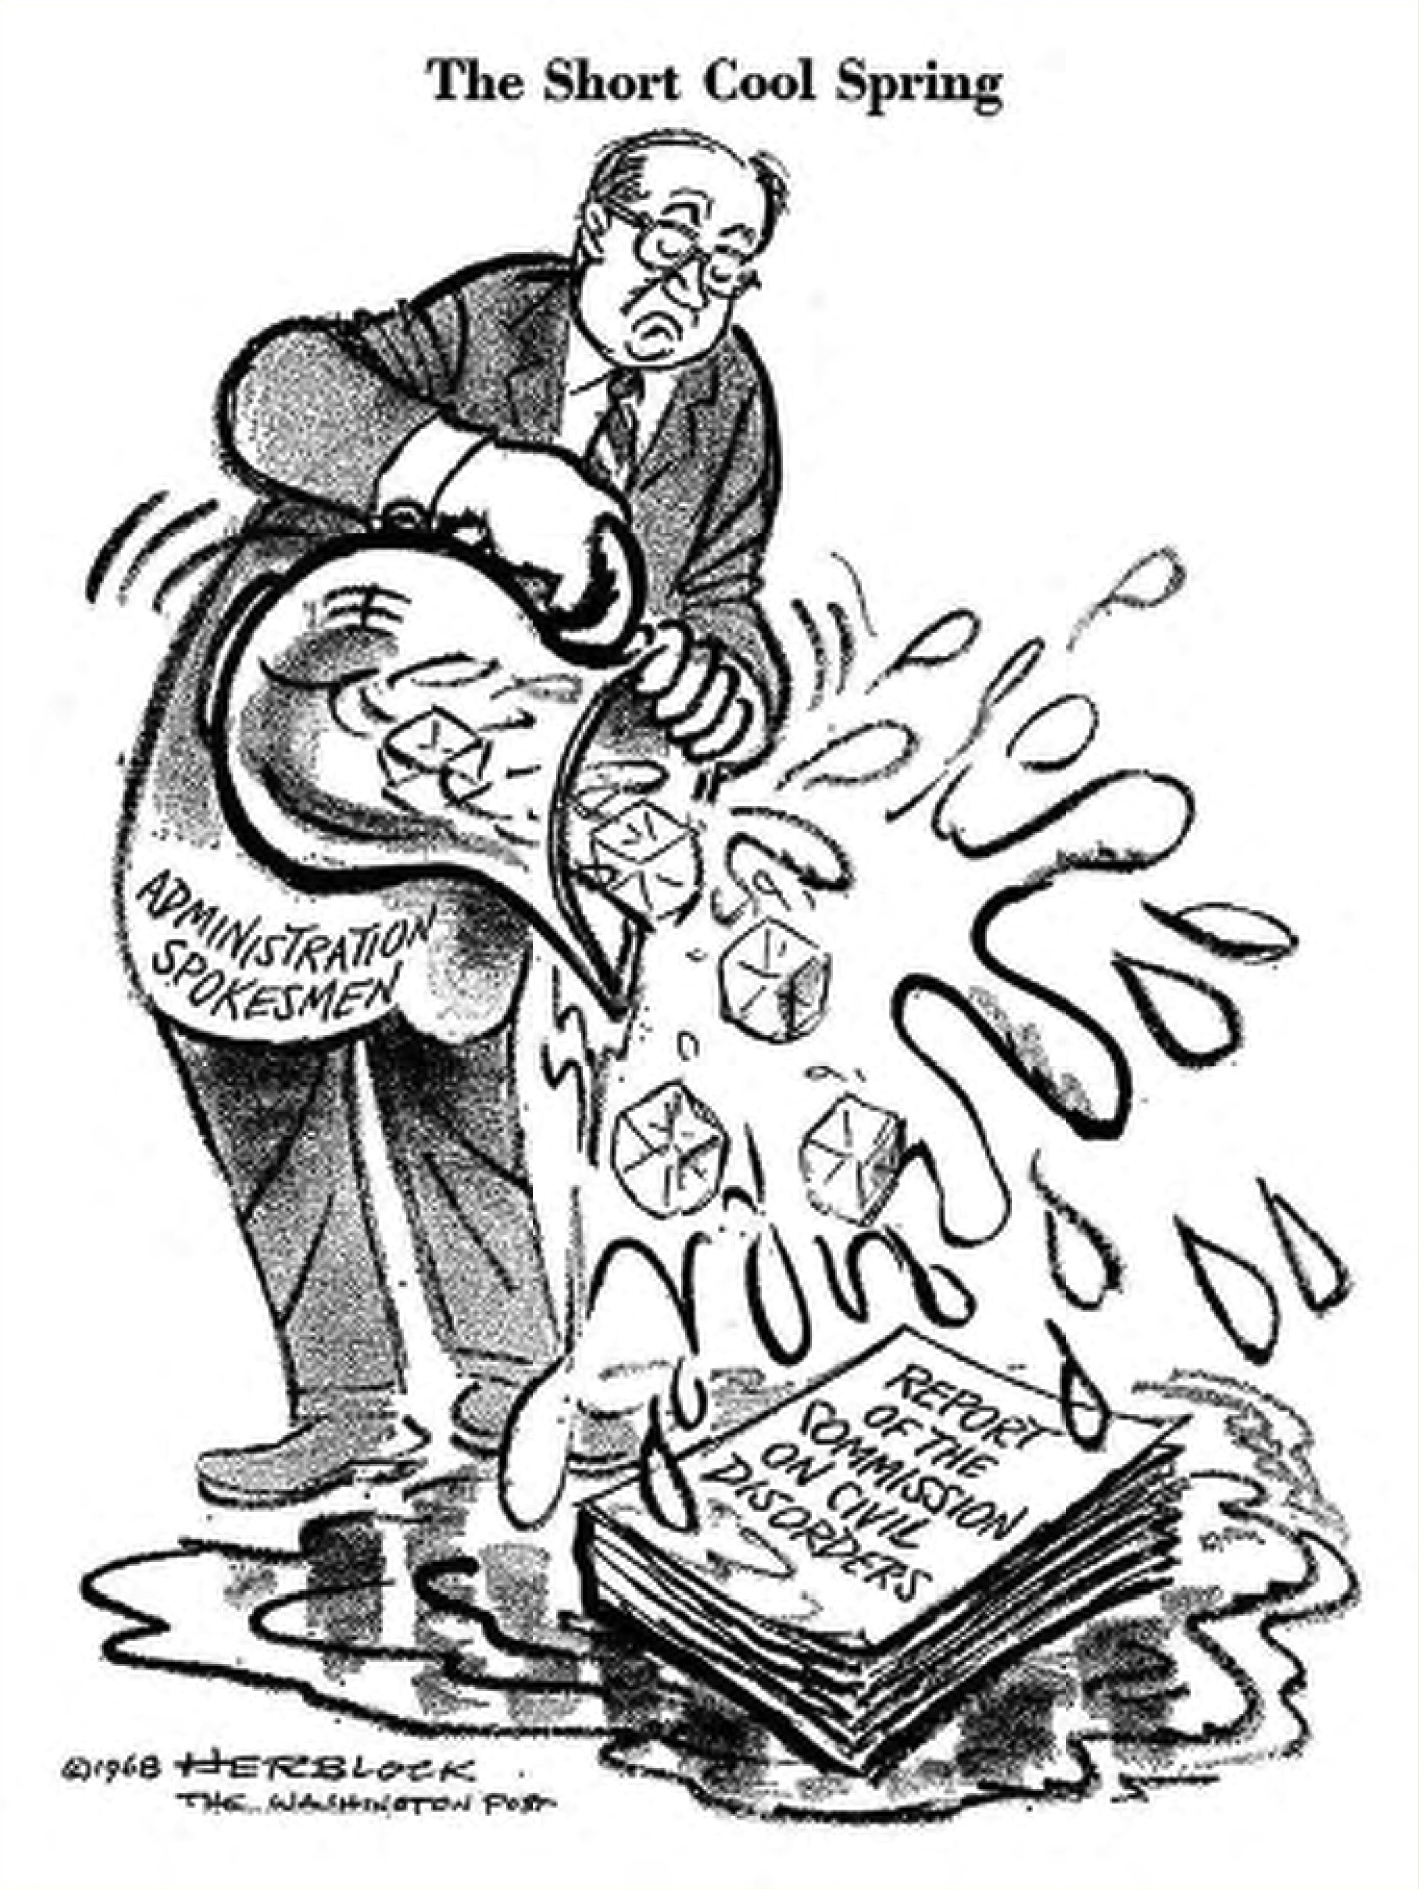 """Herblock cartoon showing a man labeled """"administration spokesmen"""" pouring a pitcher of water and ice cubes on a stack of papers labeled """"Report on the Commission on Civil Disorders."""""""